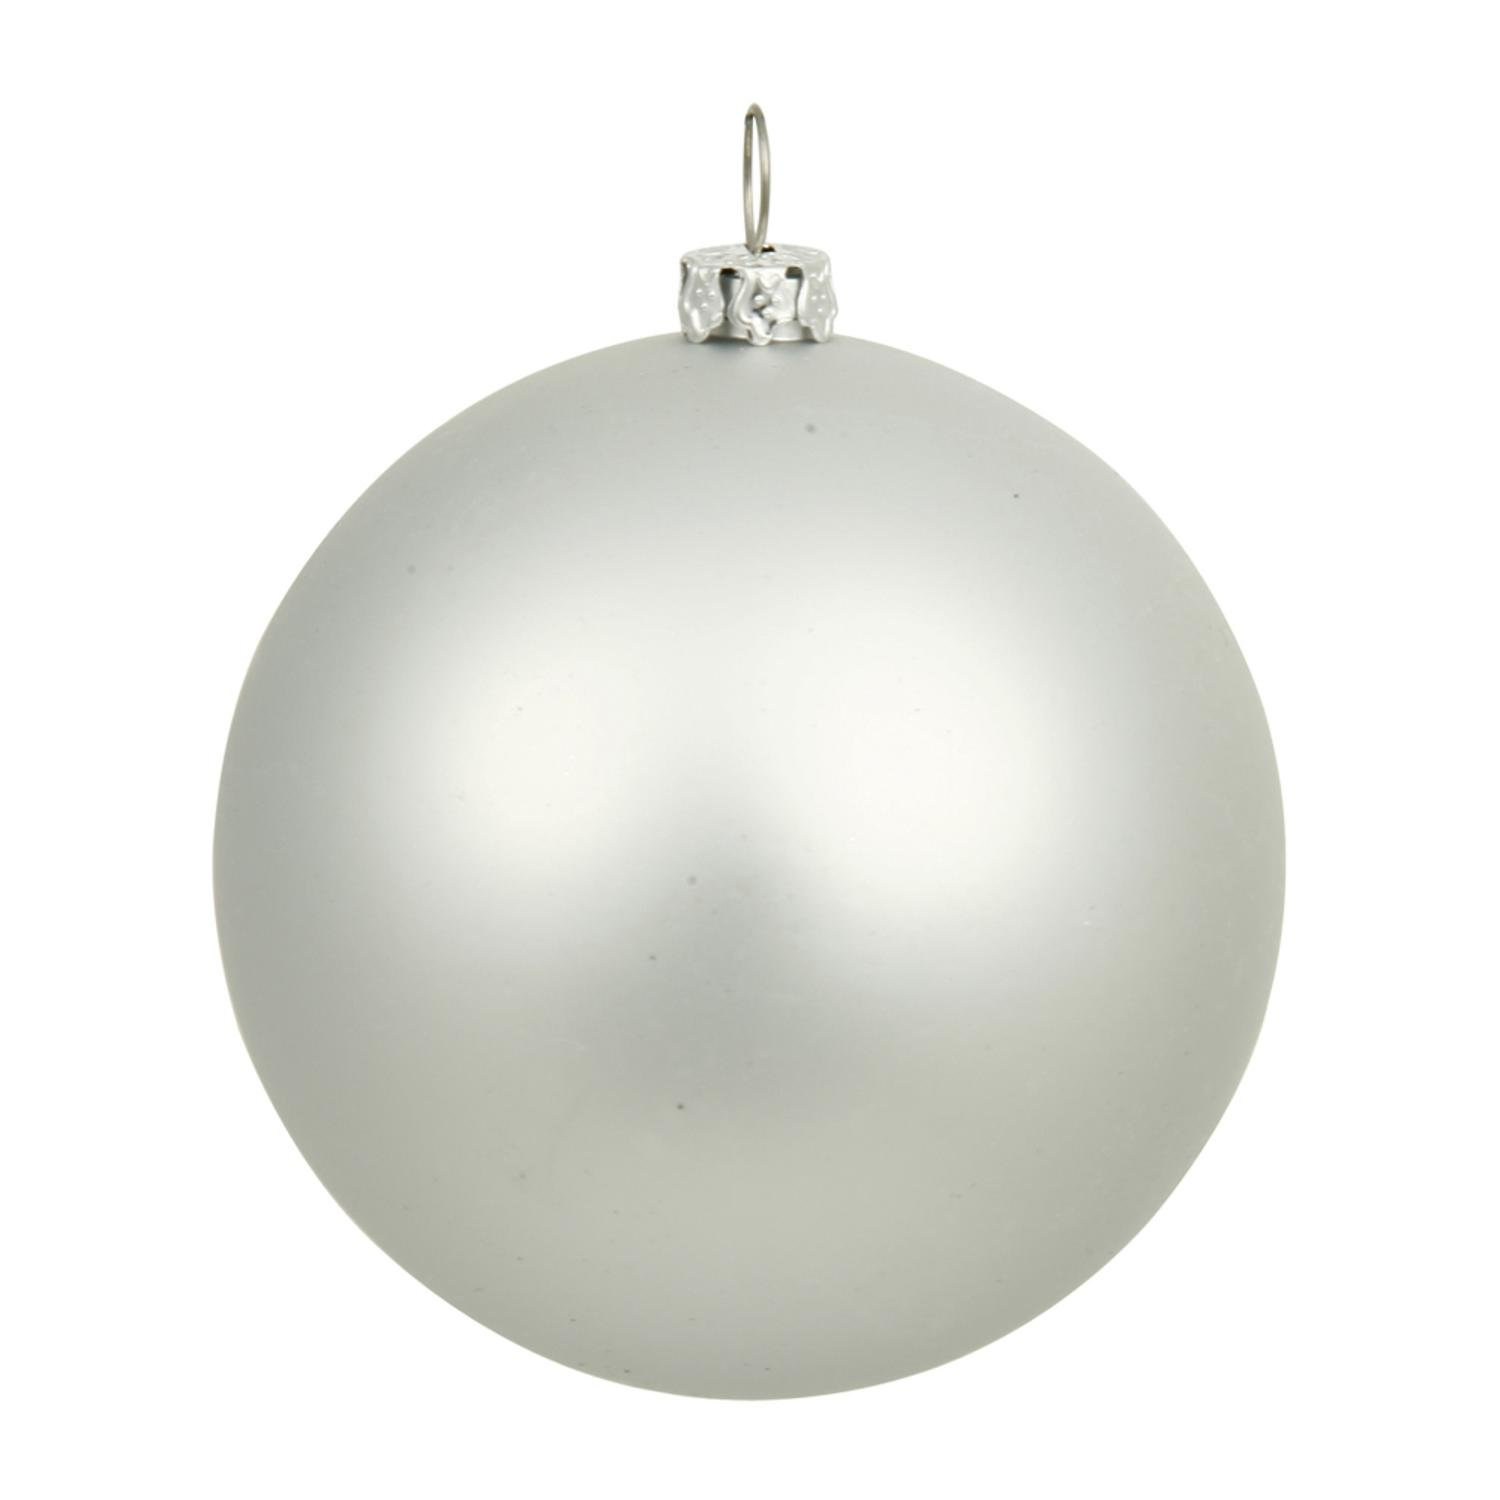 By Vickerman Matte Silver UV Resistant Commercial Drilled Shatterproof Christmas Ball Ornament 15.75''(400mm)